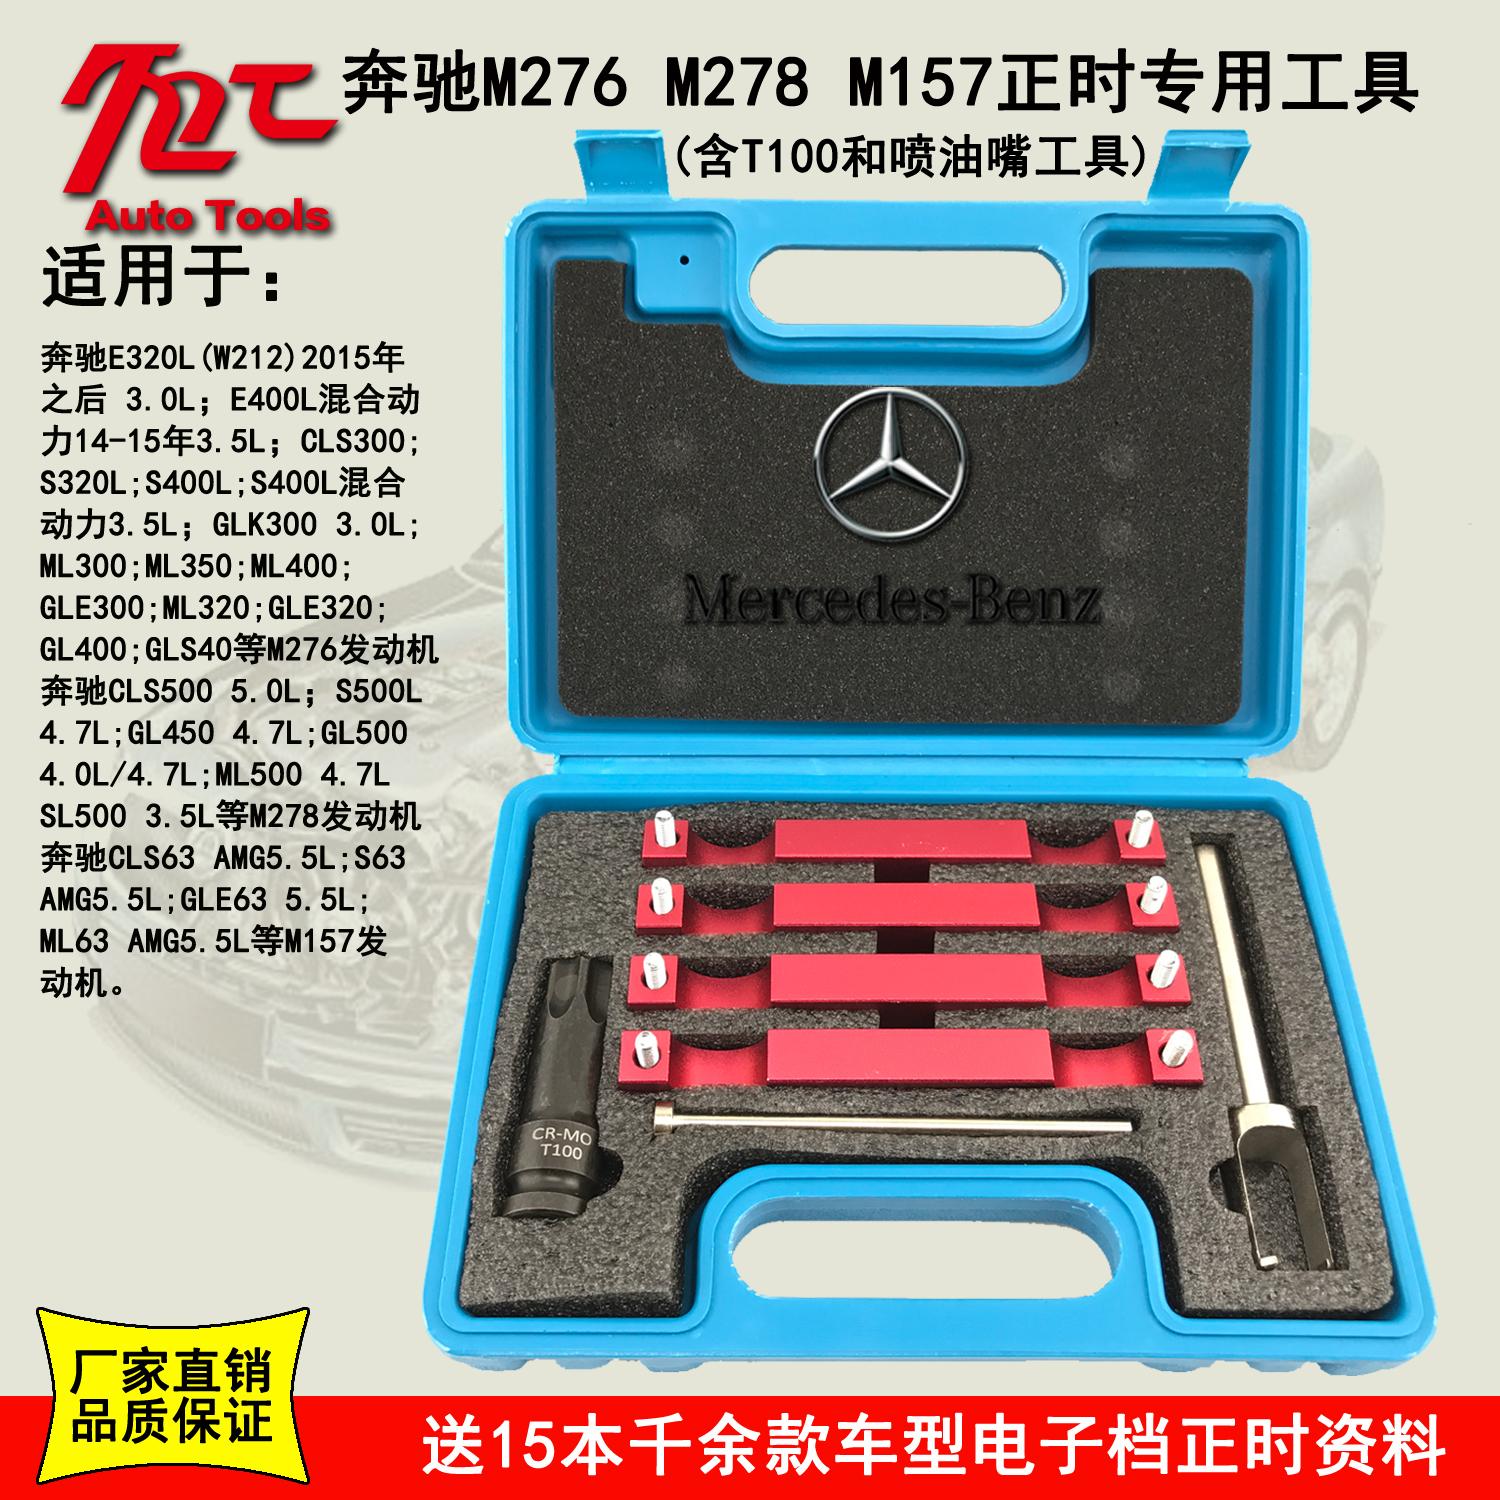 Usd mercedes benz m276 timing tool for mercedes for Mercedes benz tool kit